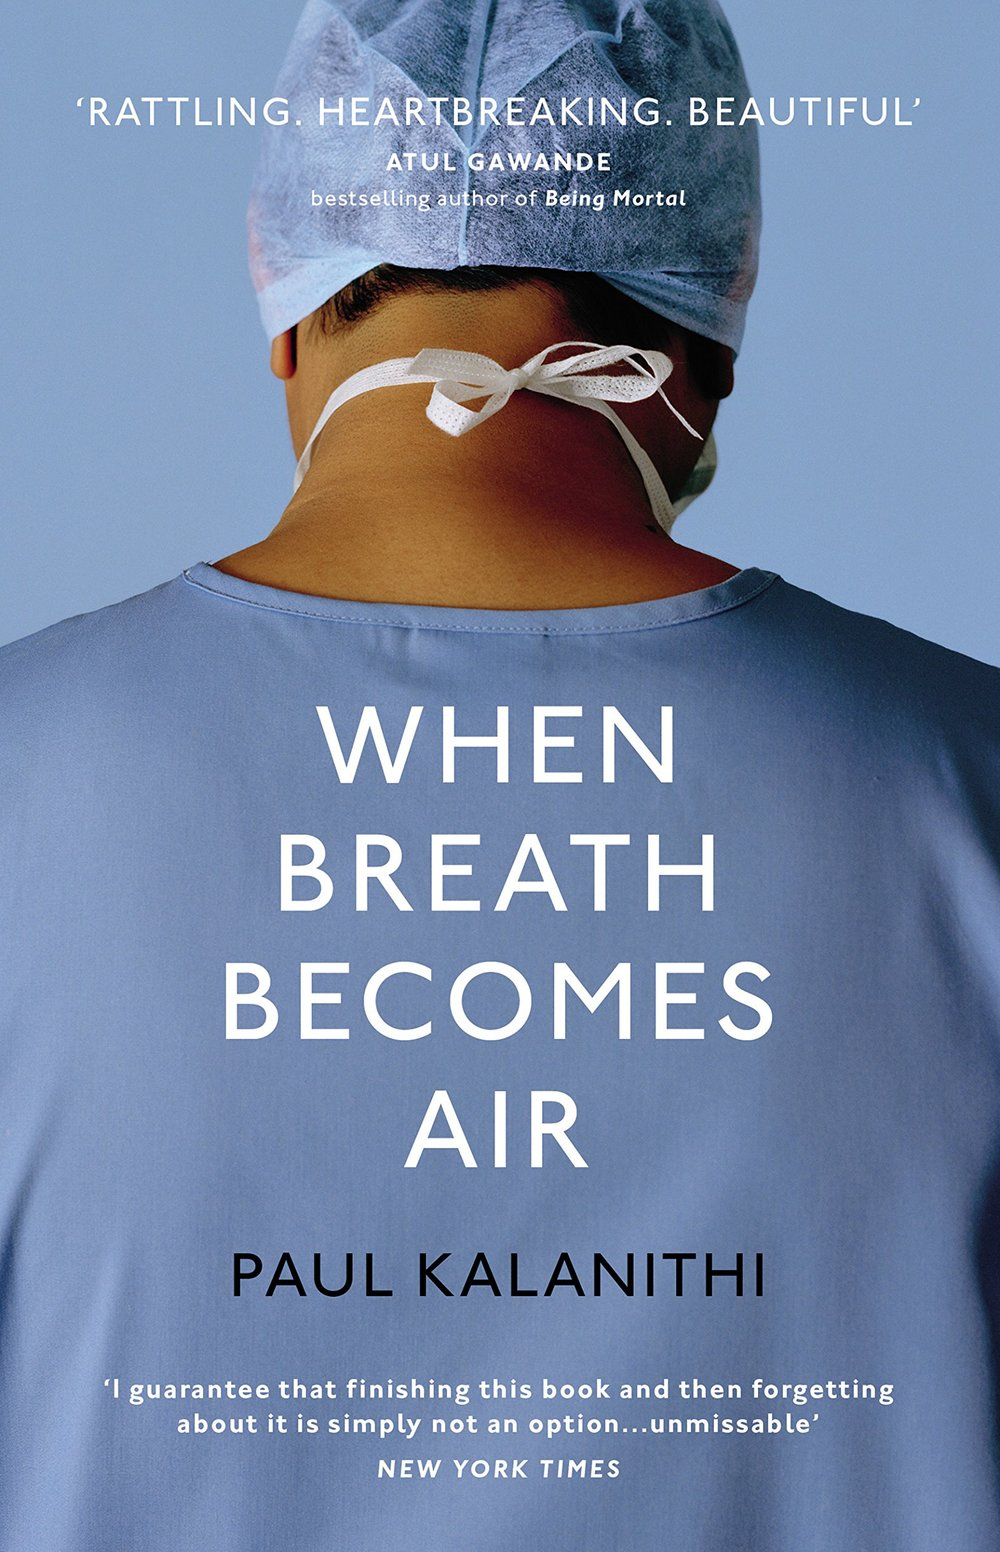 When Breath Becomes Air by Paul Kalanithi - At the brink of completing his training as a neurosurgeon, Paul Kalanithi learned that he had late stage lung cancer. In the midst of his dramatic shift from doctor to patient, Kalanithi wrote a memoir to tackle his questions on life, death, and leaving the people you love behind. Though his memoir is short (just over 200 pages), Kalanithi's philosophy and general commentary has stuck with me since completing it. I recommend this to anyone who has a couple of hours to spare. Image via here.